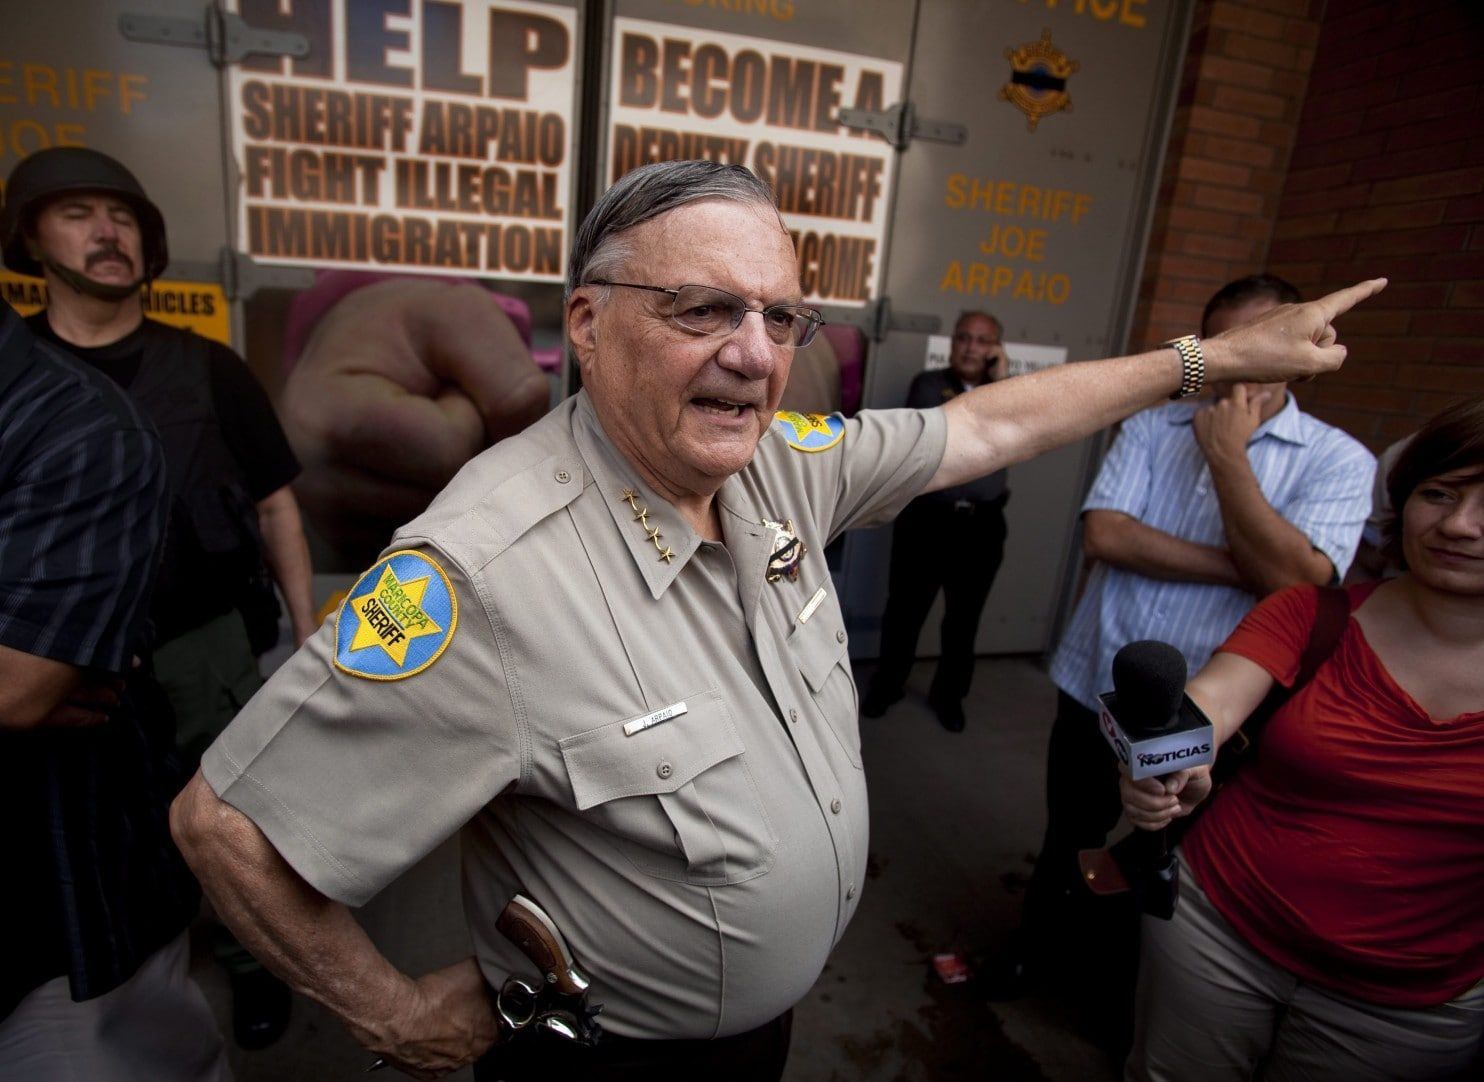 The year I spent in Joe Arpaio's tent jail was hell. He should never walk free. https://t.co/BT3GN96fje https://t.co/KSNUv0e1Wu